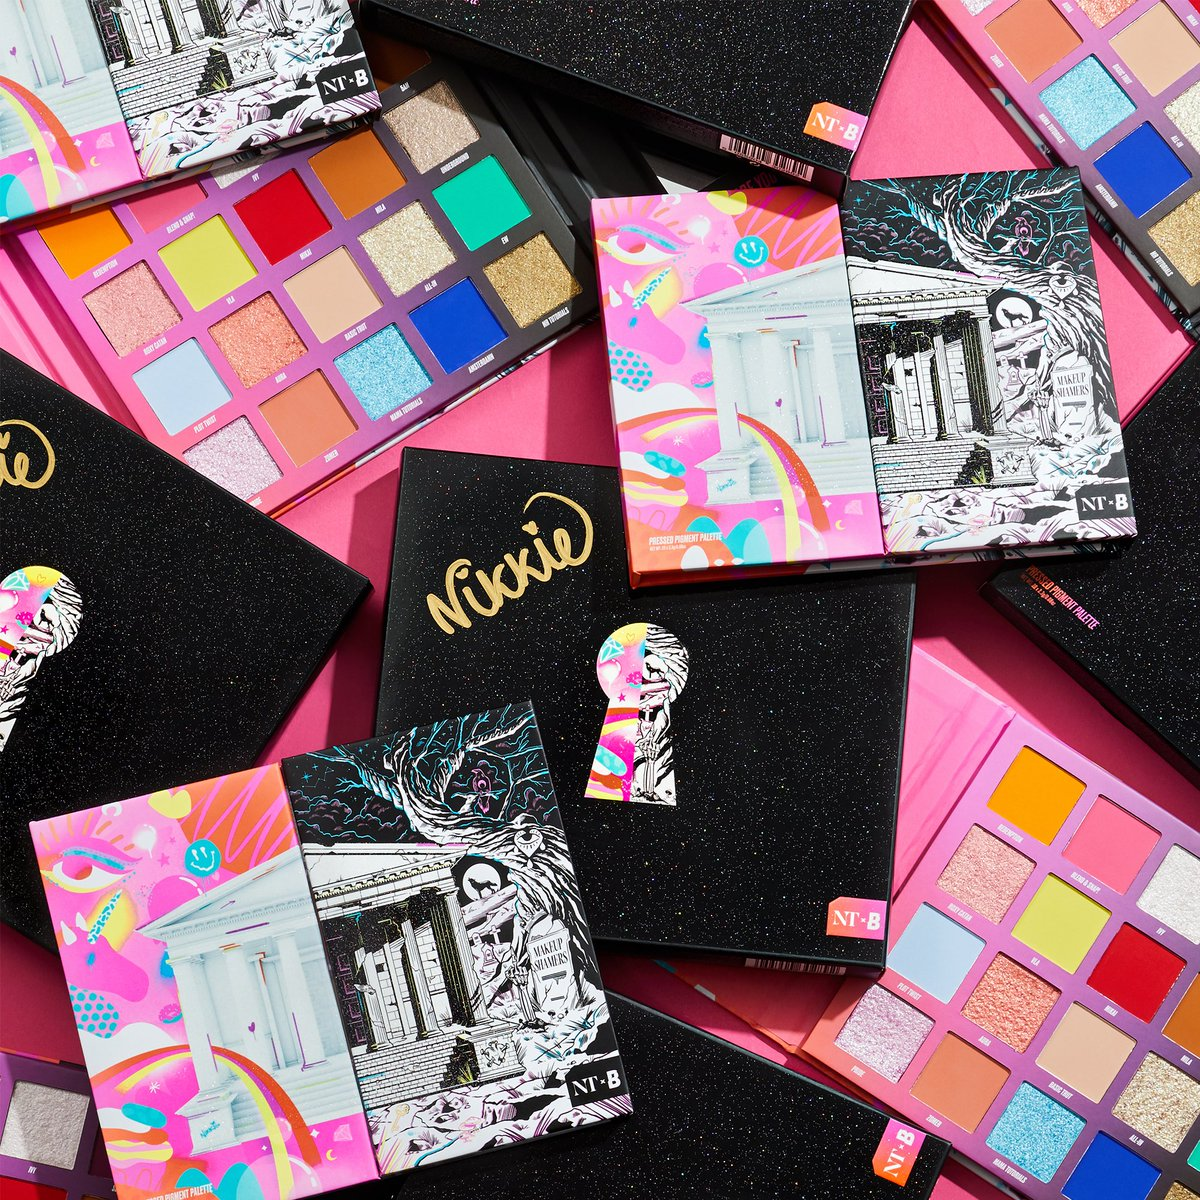 🚨 WANNA WIN 🚨   We've got a limited amount of SIGNED #NikkieTutorialsxBEAUTYBAY Palettes to give away 🤩🙌🌈🔥   All ya gotta do is: - Like & RT this pic 💖 - Make sure you're following @beautybay ⚡ - Comment '💥' below 🙌  T&C's: https://t.co/YoCZyJ2Wv4 https://t.co/vZQizMsCVZ